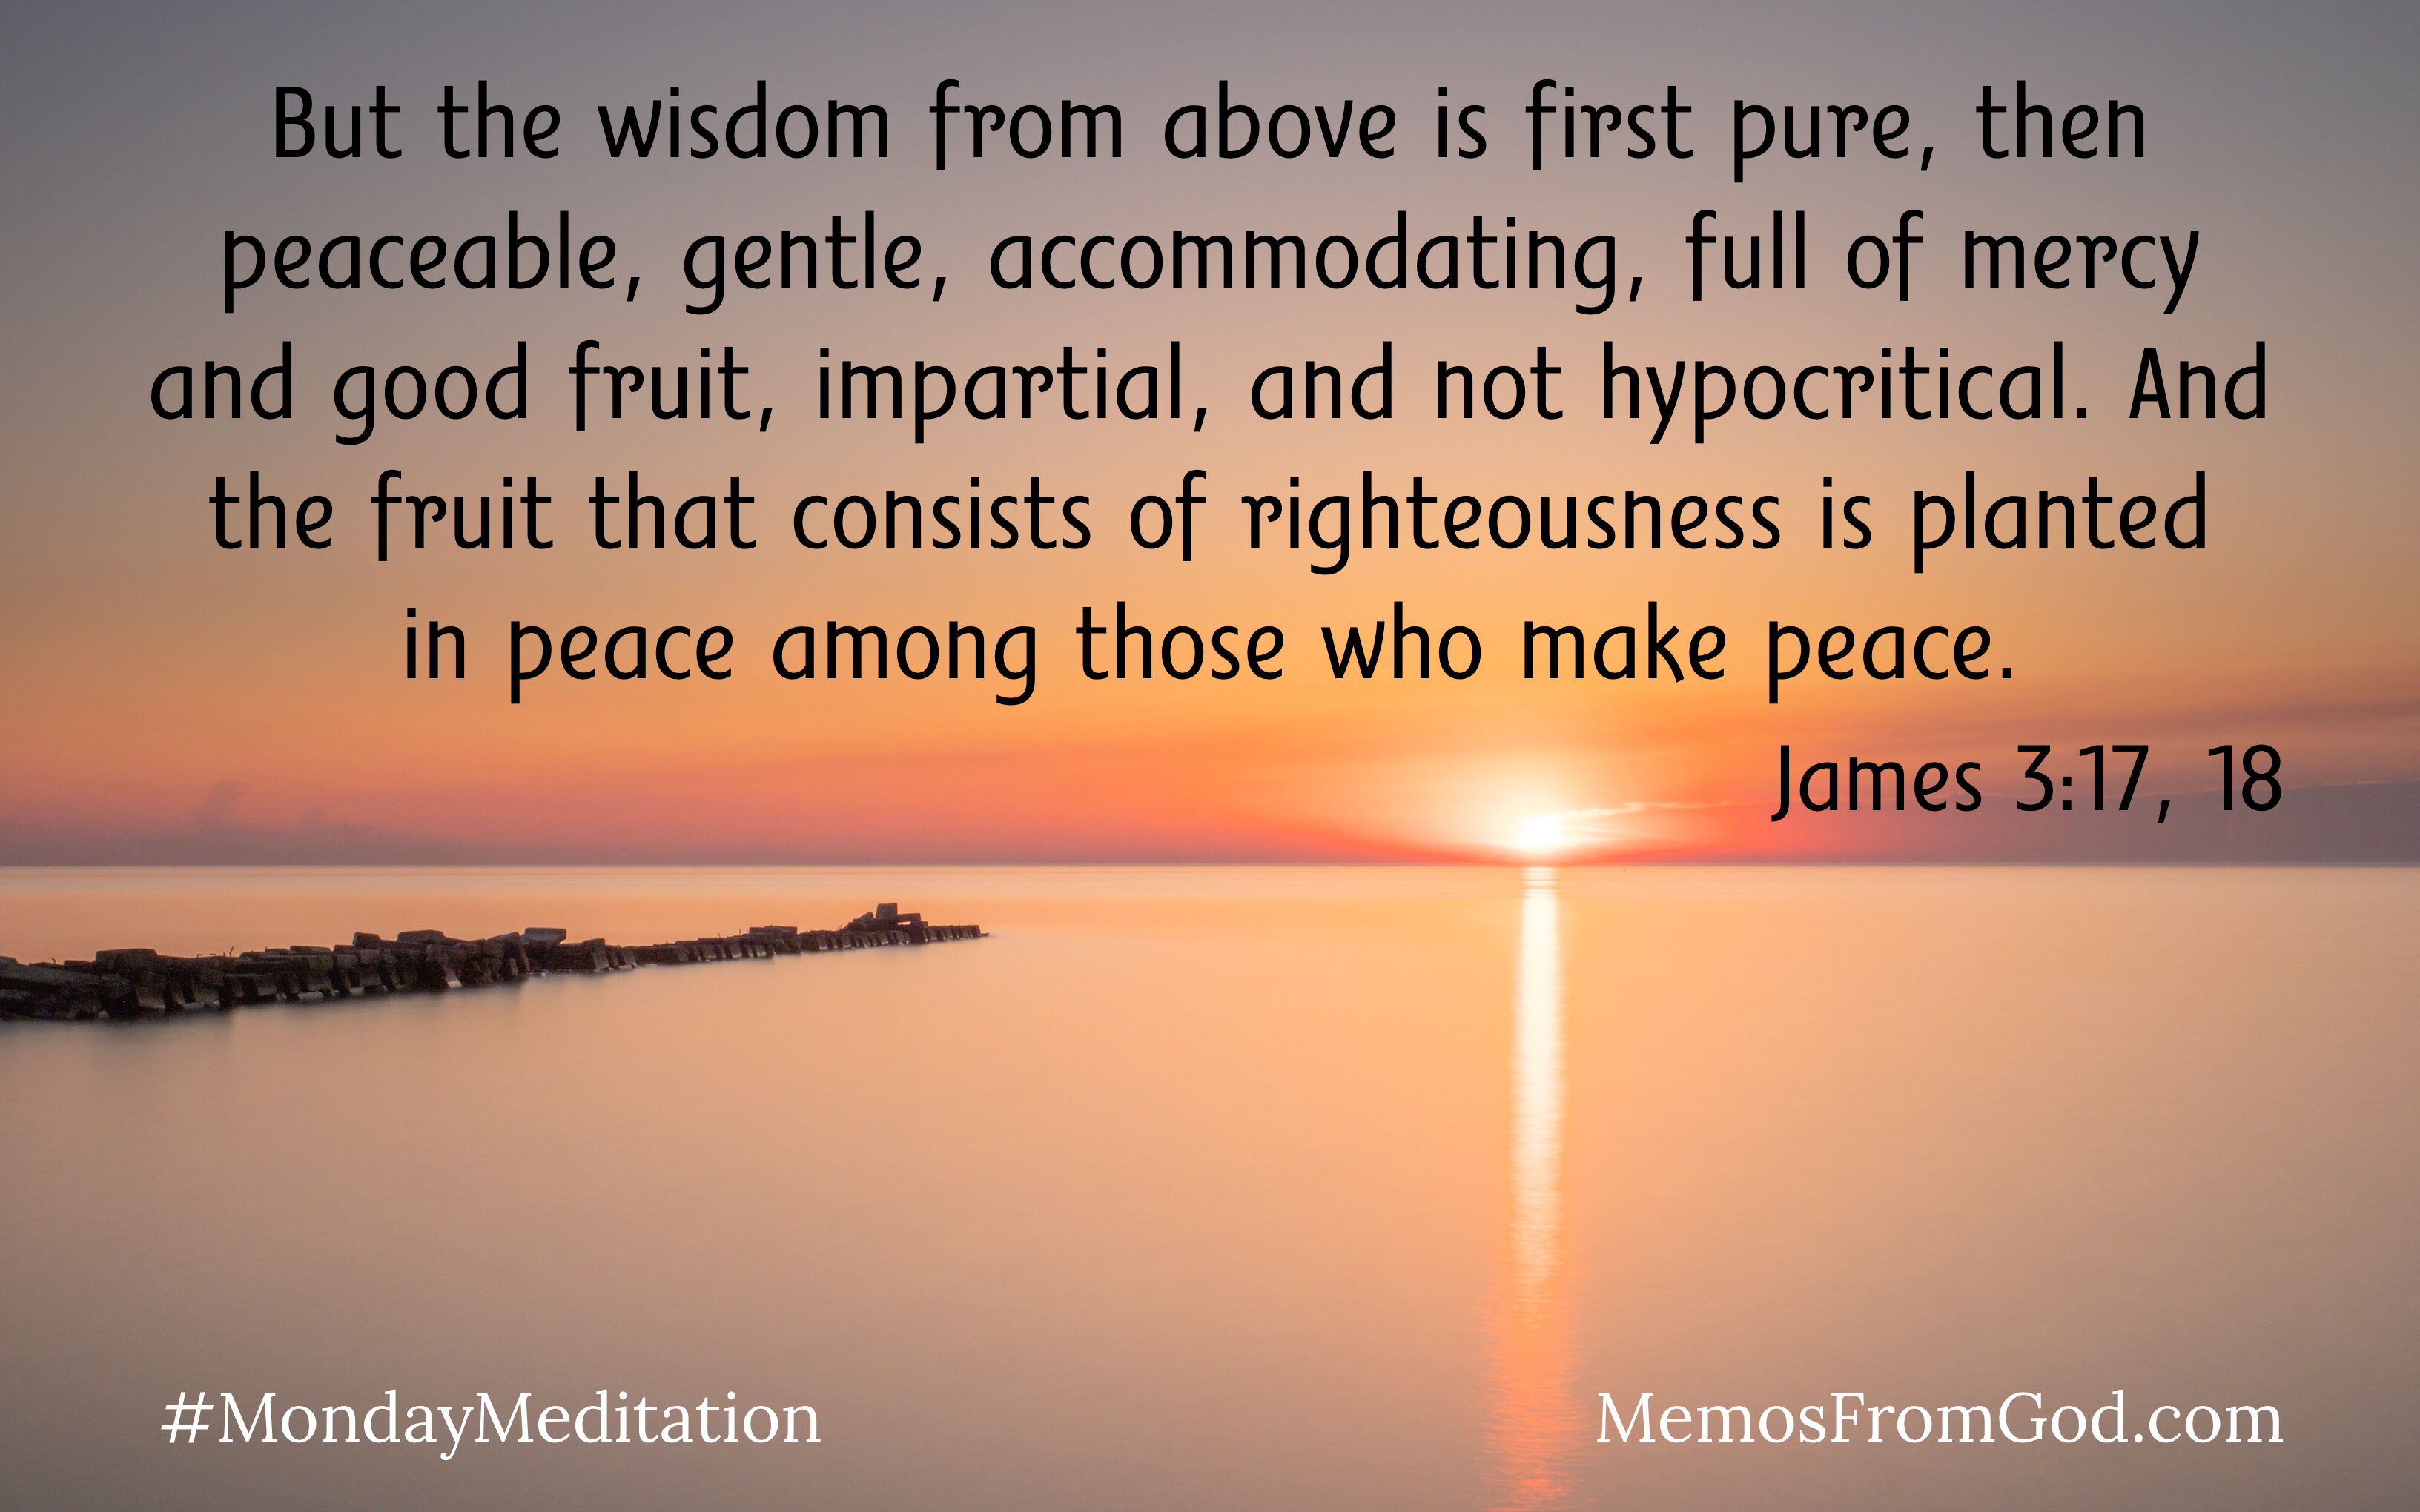 A setting sun in a peach coloured sky reflecting in a calm lake. Caption: But the wisdom from above is first pure, then peaceable, gentle, accommodating, full of mercy and good fruit, impartial, and not hypocritical. And the fruit that consists of righteousness is planted in peace among those who make peace. James 3:17, 18